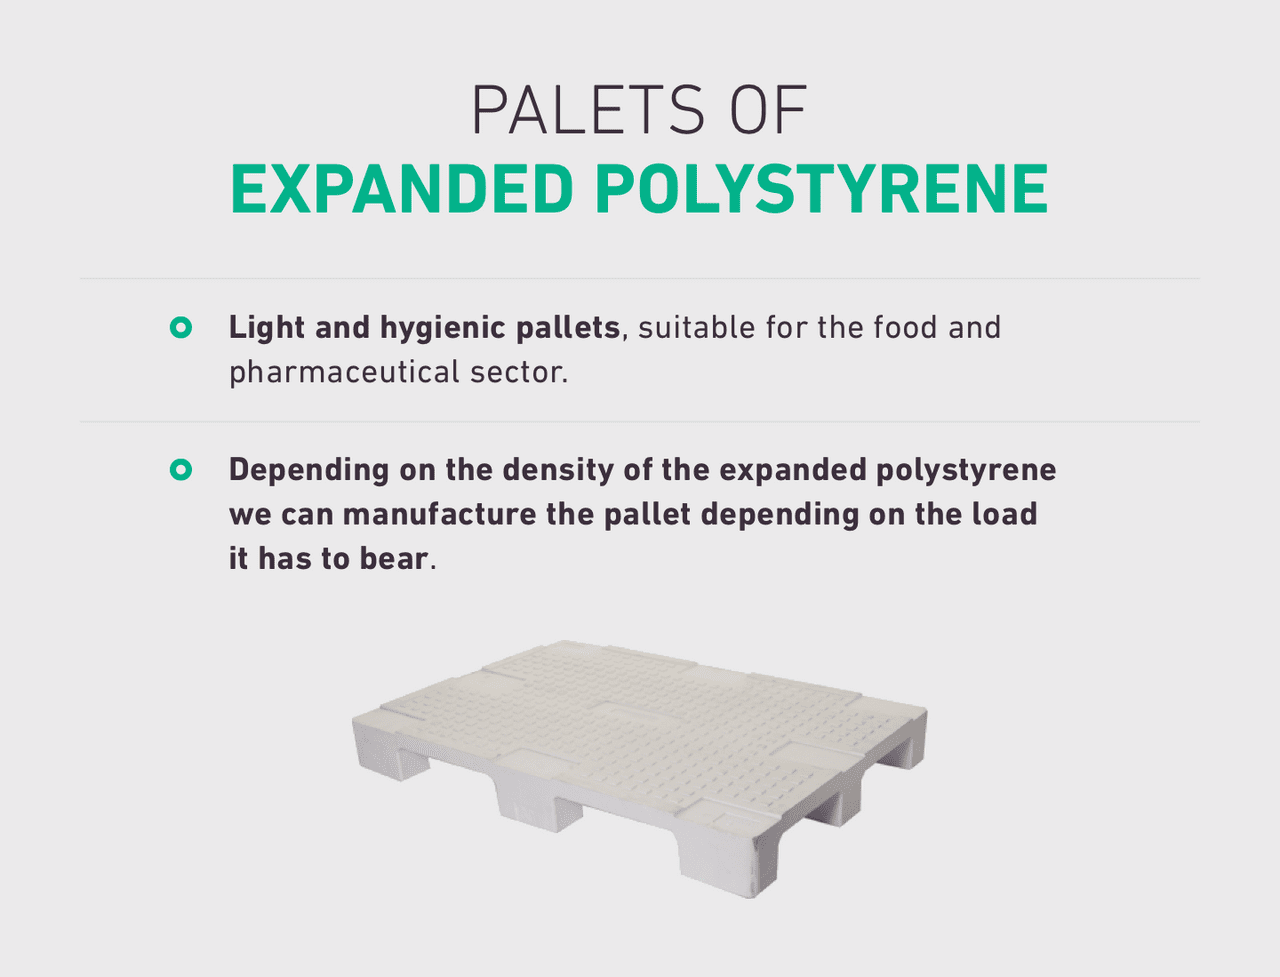 Light and hygienic pallets, suitable for the food and pharmaceutical sector. Depending on the density of the expanded polystyrene we can manufacture the pallet depending on the load it has to bear.